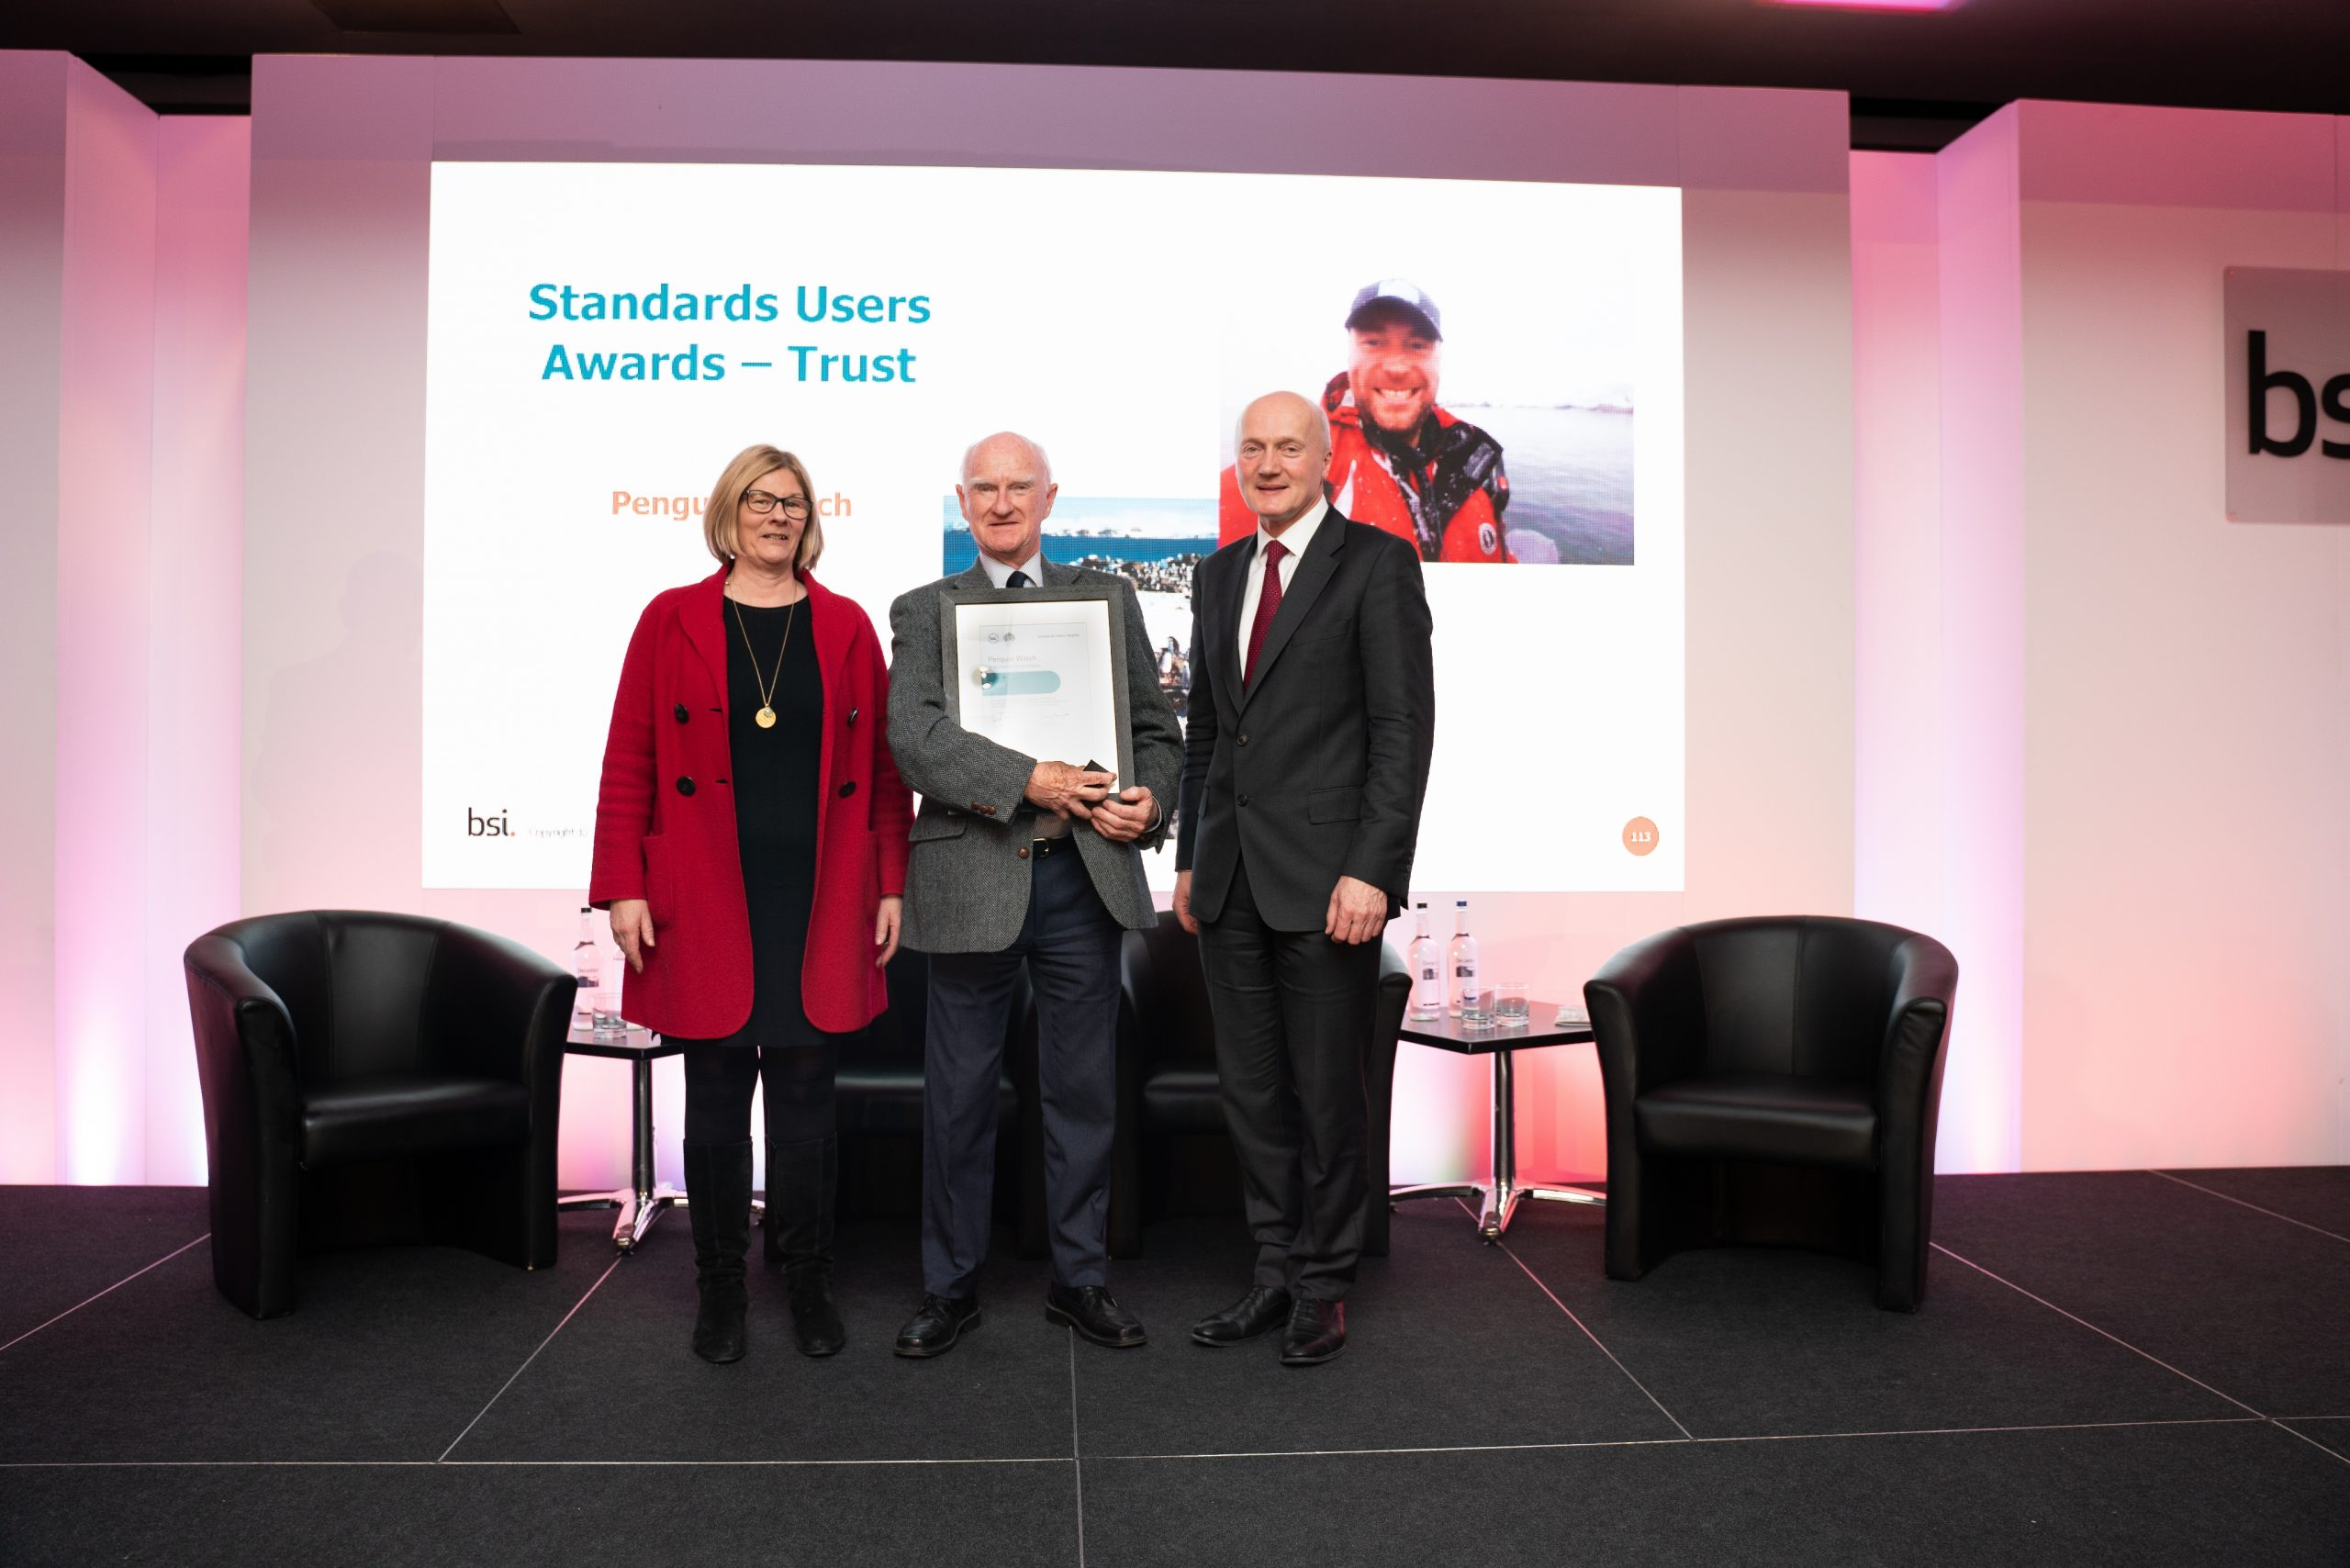 The YET's Bob Schroter collects the BSI Award on behalf of Penguin Watch